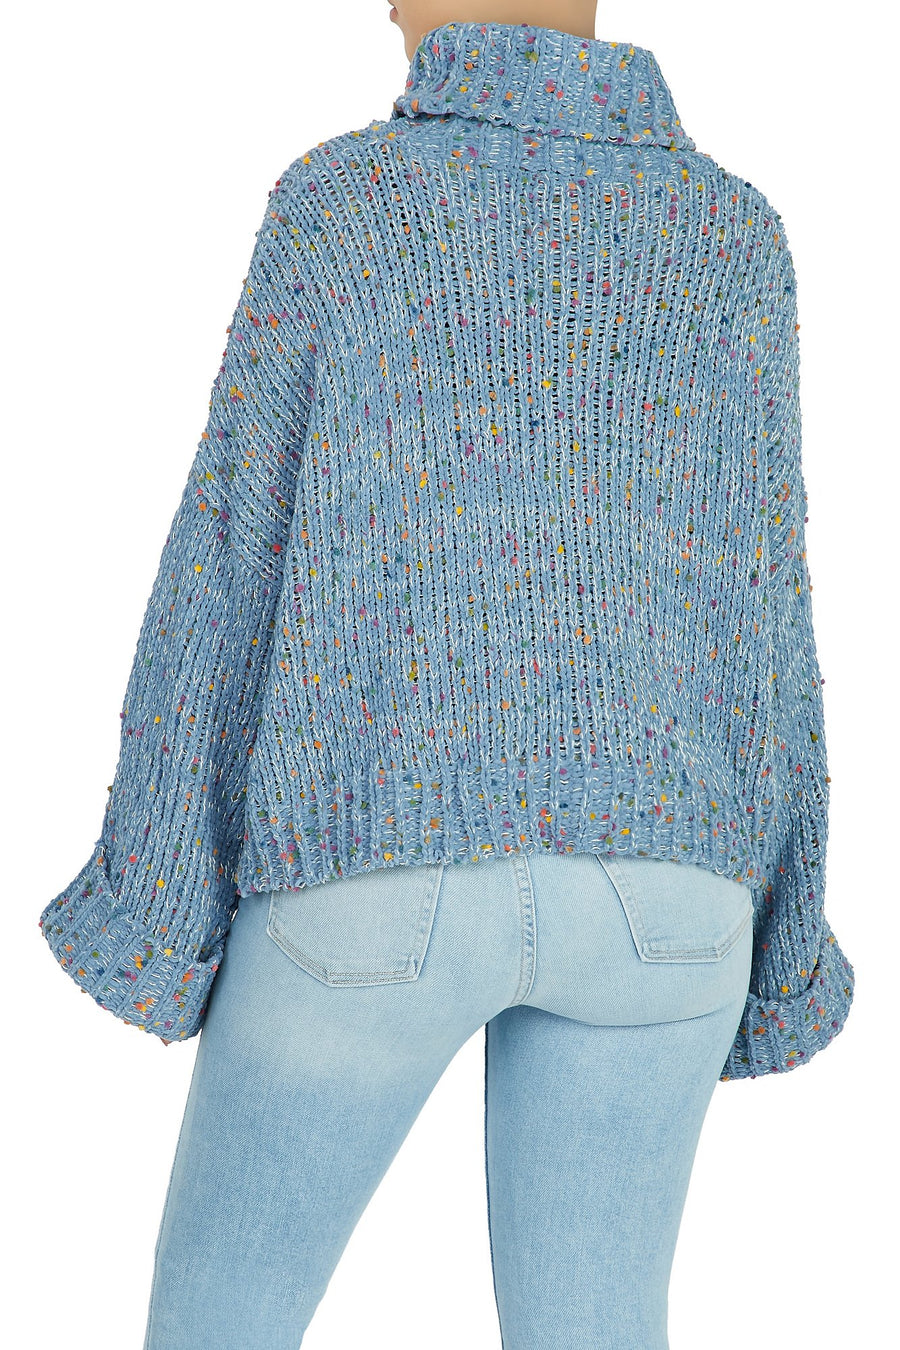 Never A Dull moment Sweater (Blue)